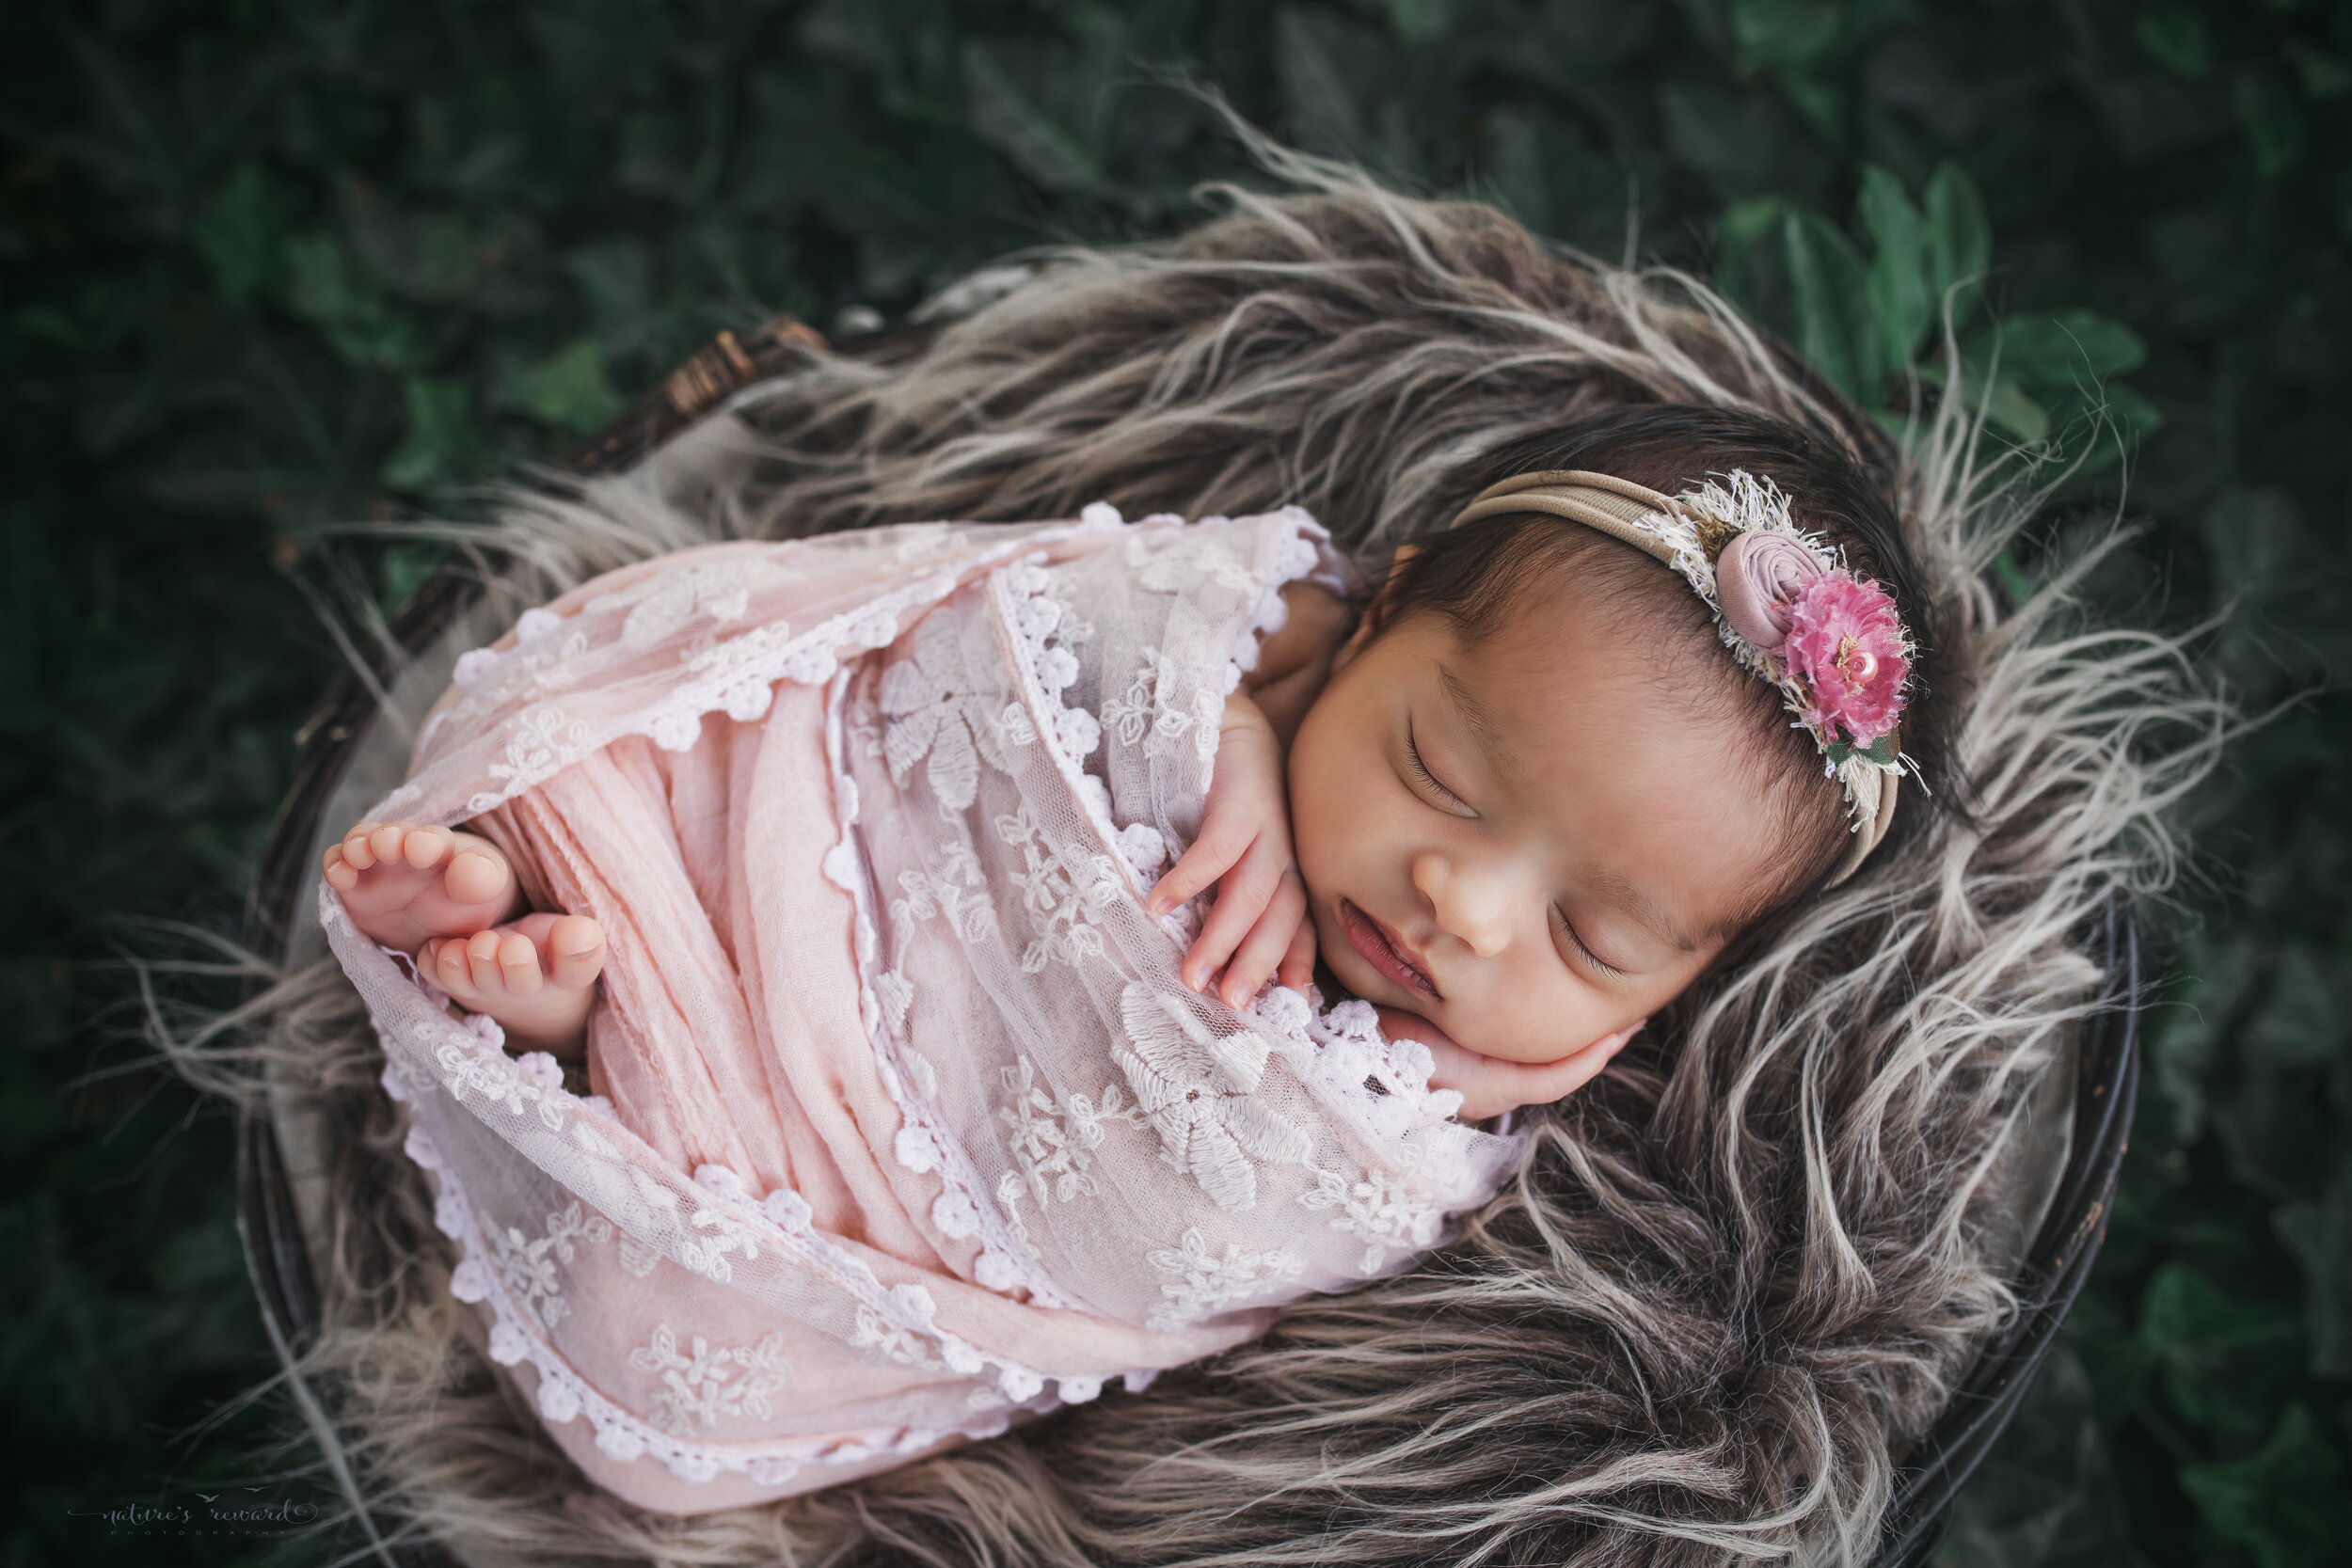 Sweet baby girl swaddled in pink lace in a garden of ivy, a newborn portrait by Nature's Reward Photography